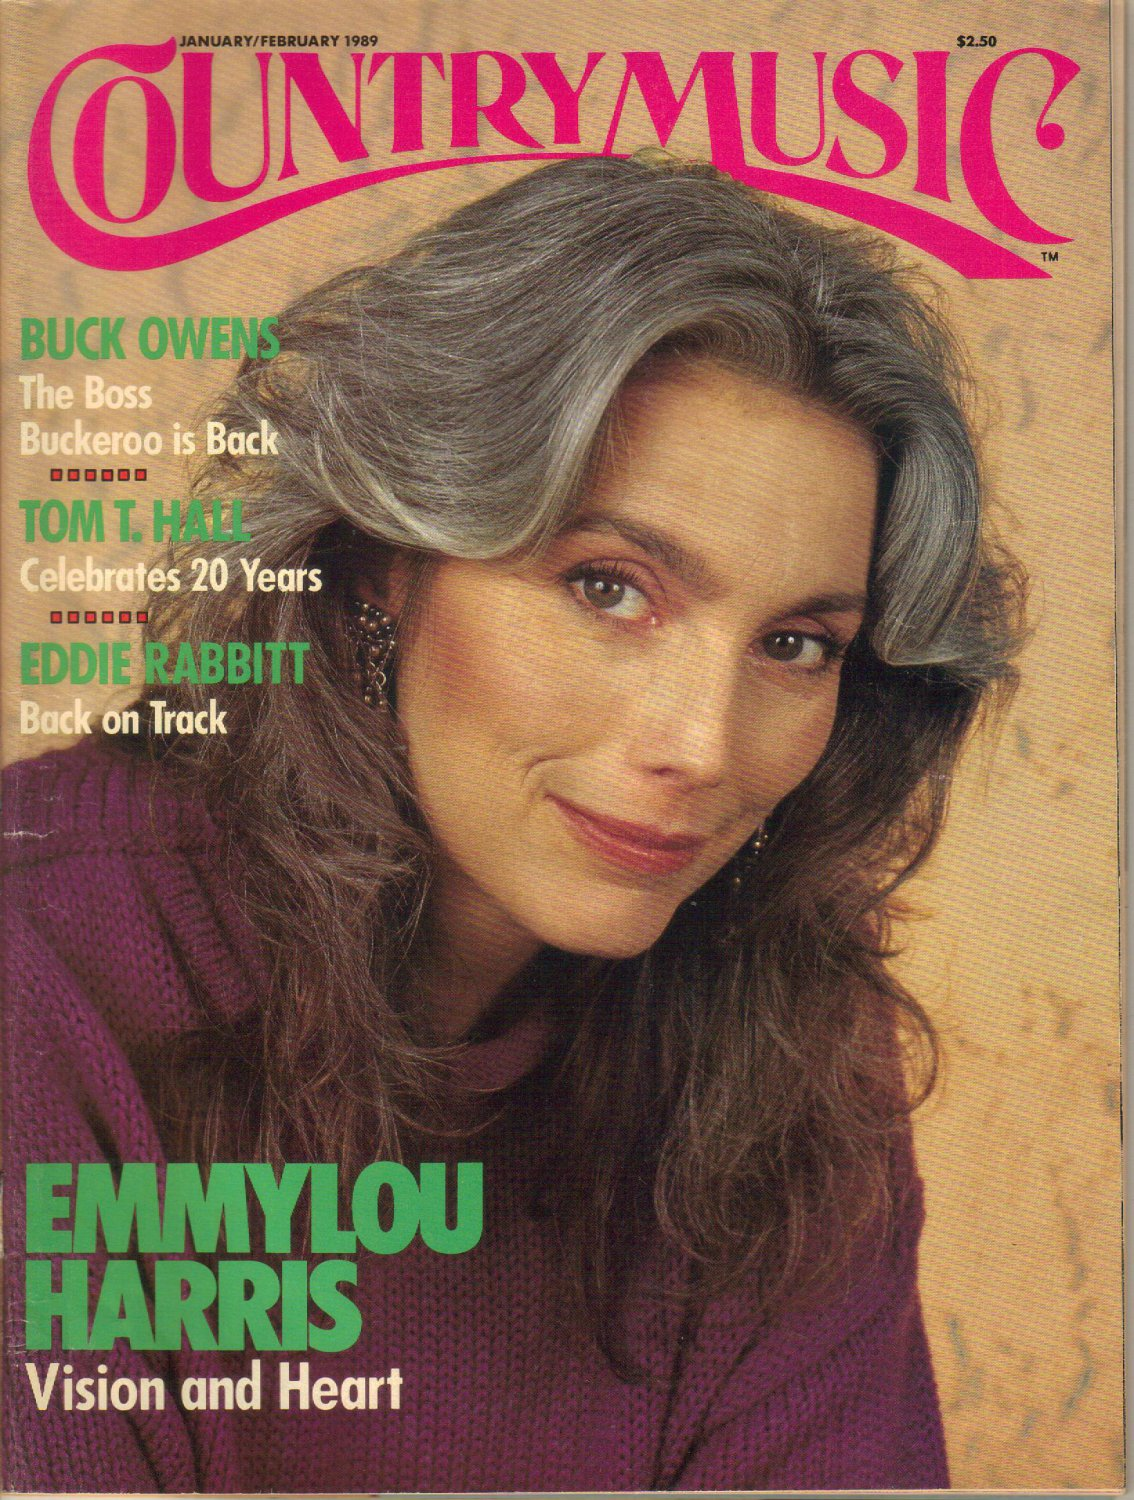 COUNTRY MUSIC January February 1989 No 135 EMMYLOU HARRIS Eddie Rabbitt Tom T Hall BUCK OWENS